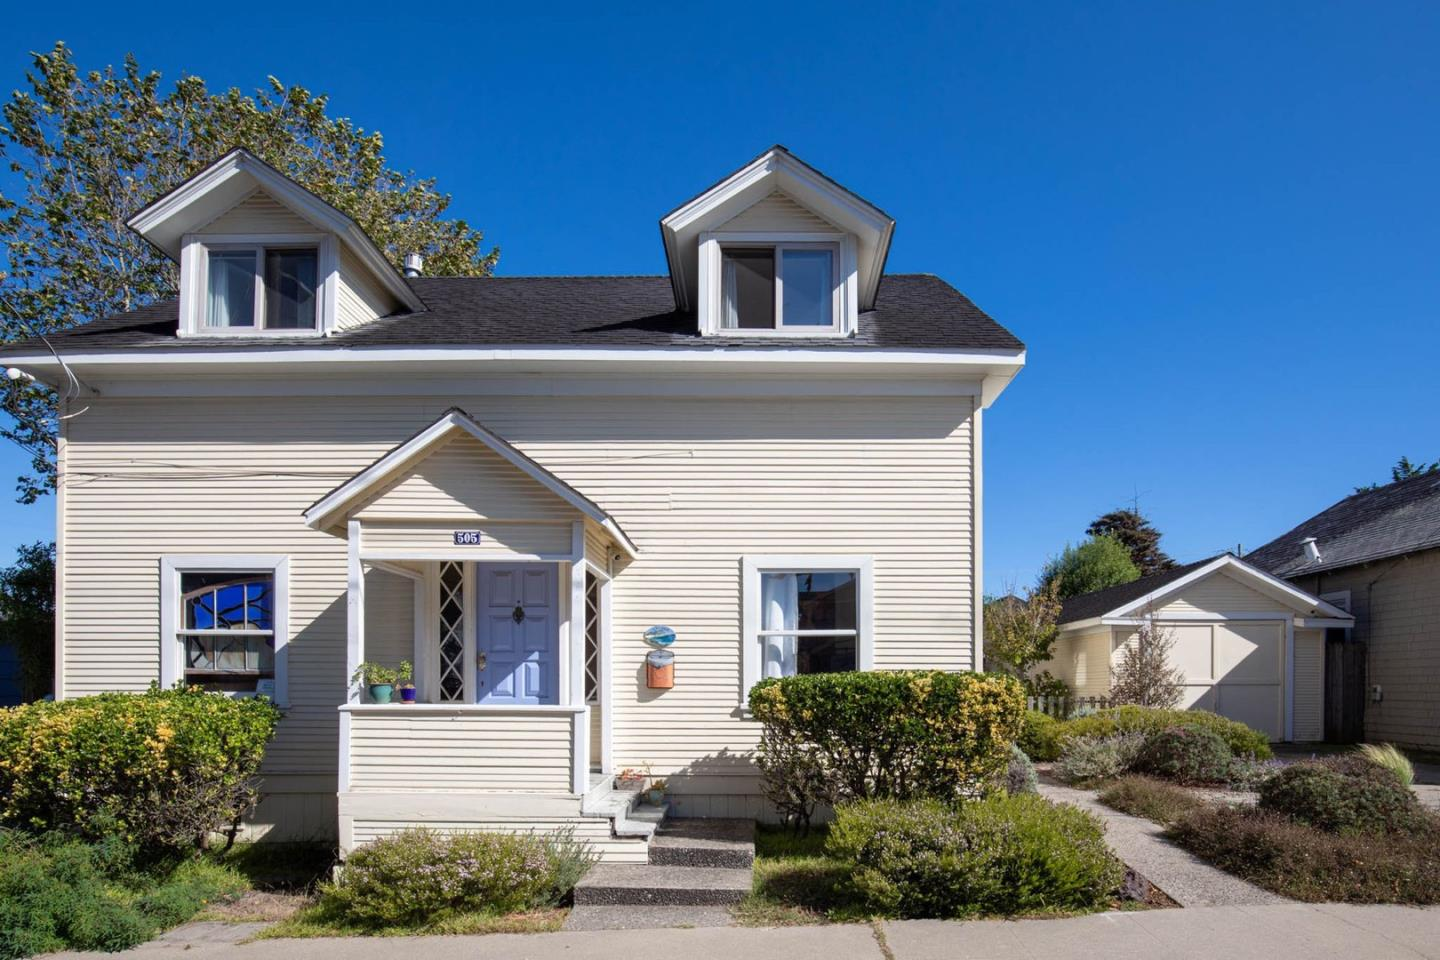 Detail Gallery Image 1 of 20 For 505 Monterey Ave, Pacific Grove, CA 93950 - 5 Beds | 2 Baths